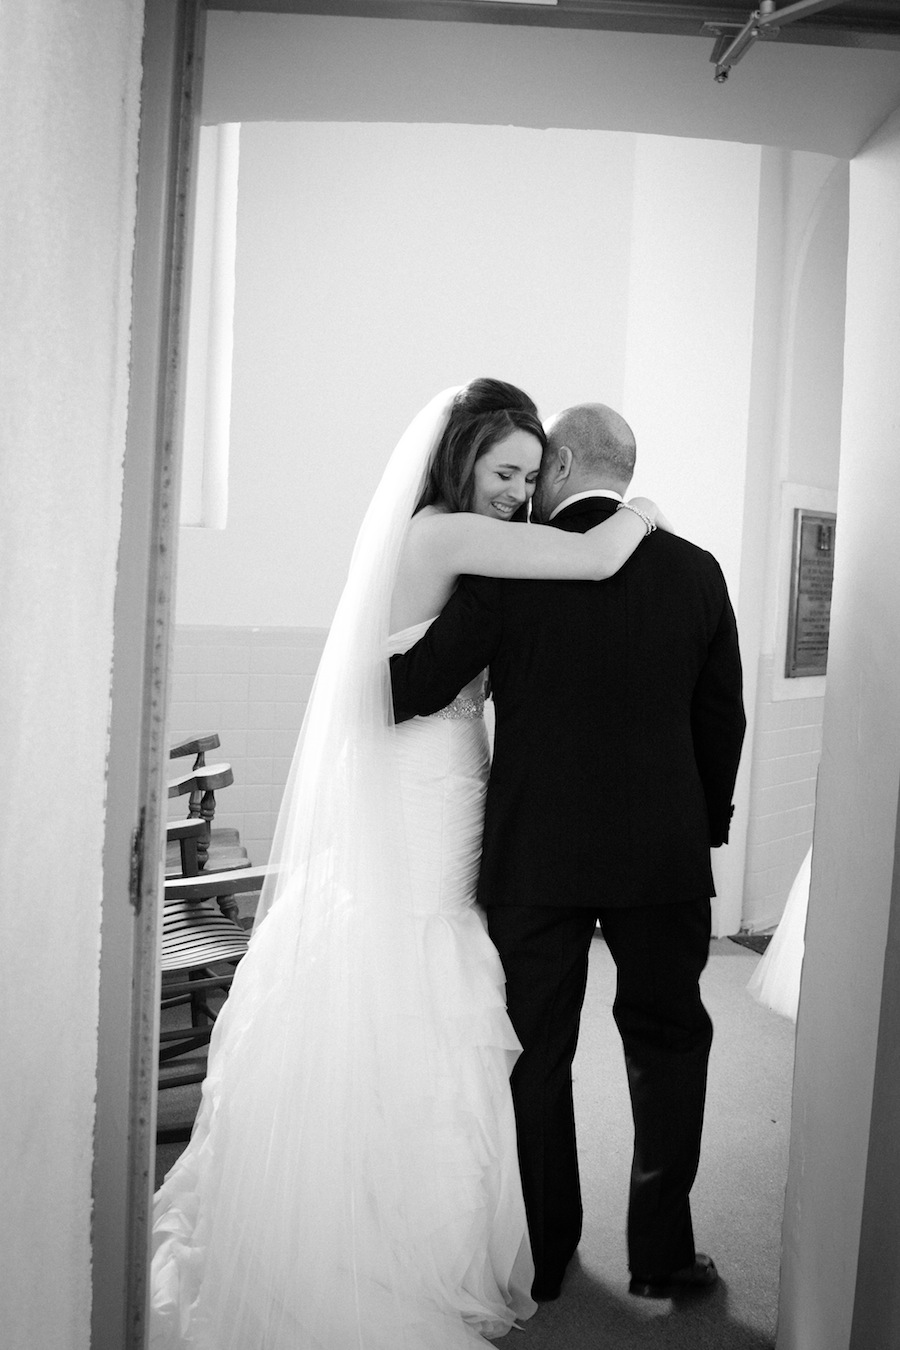 Bride First Look with Father | Getting Ready Wedding Day Details